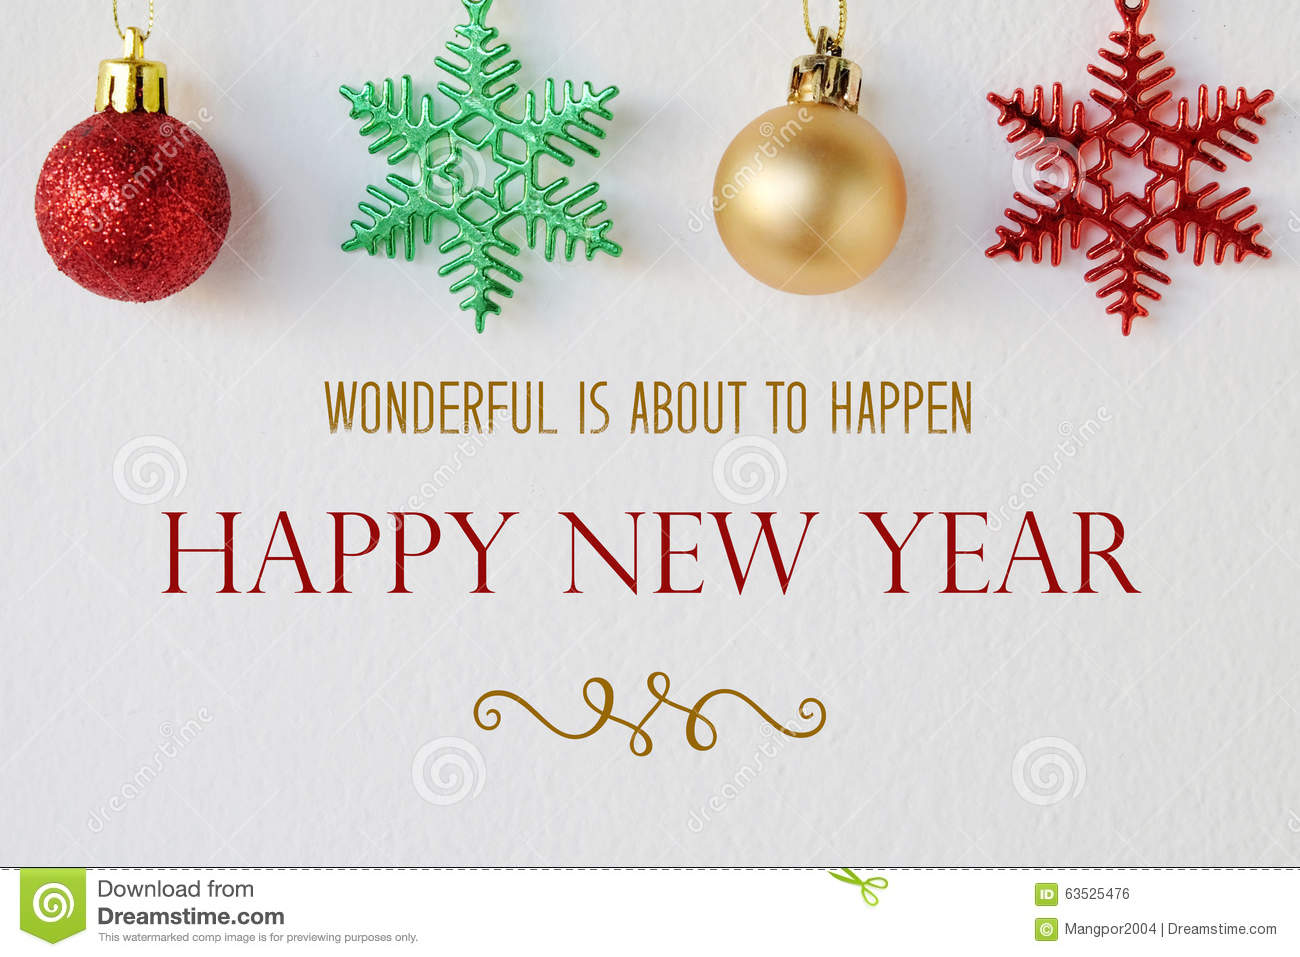 Wonderful Is About To Happen, Happy New Year Quotation Stock Photo ...